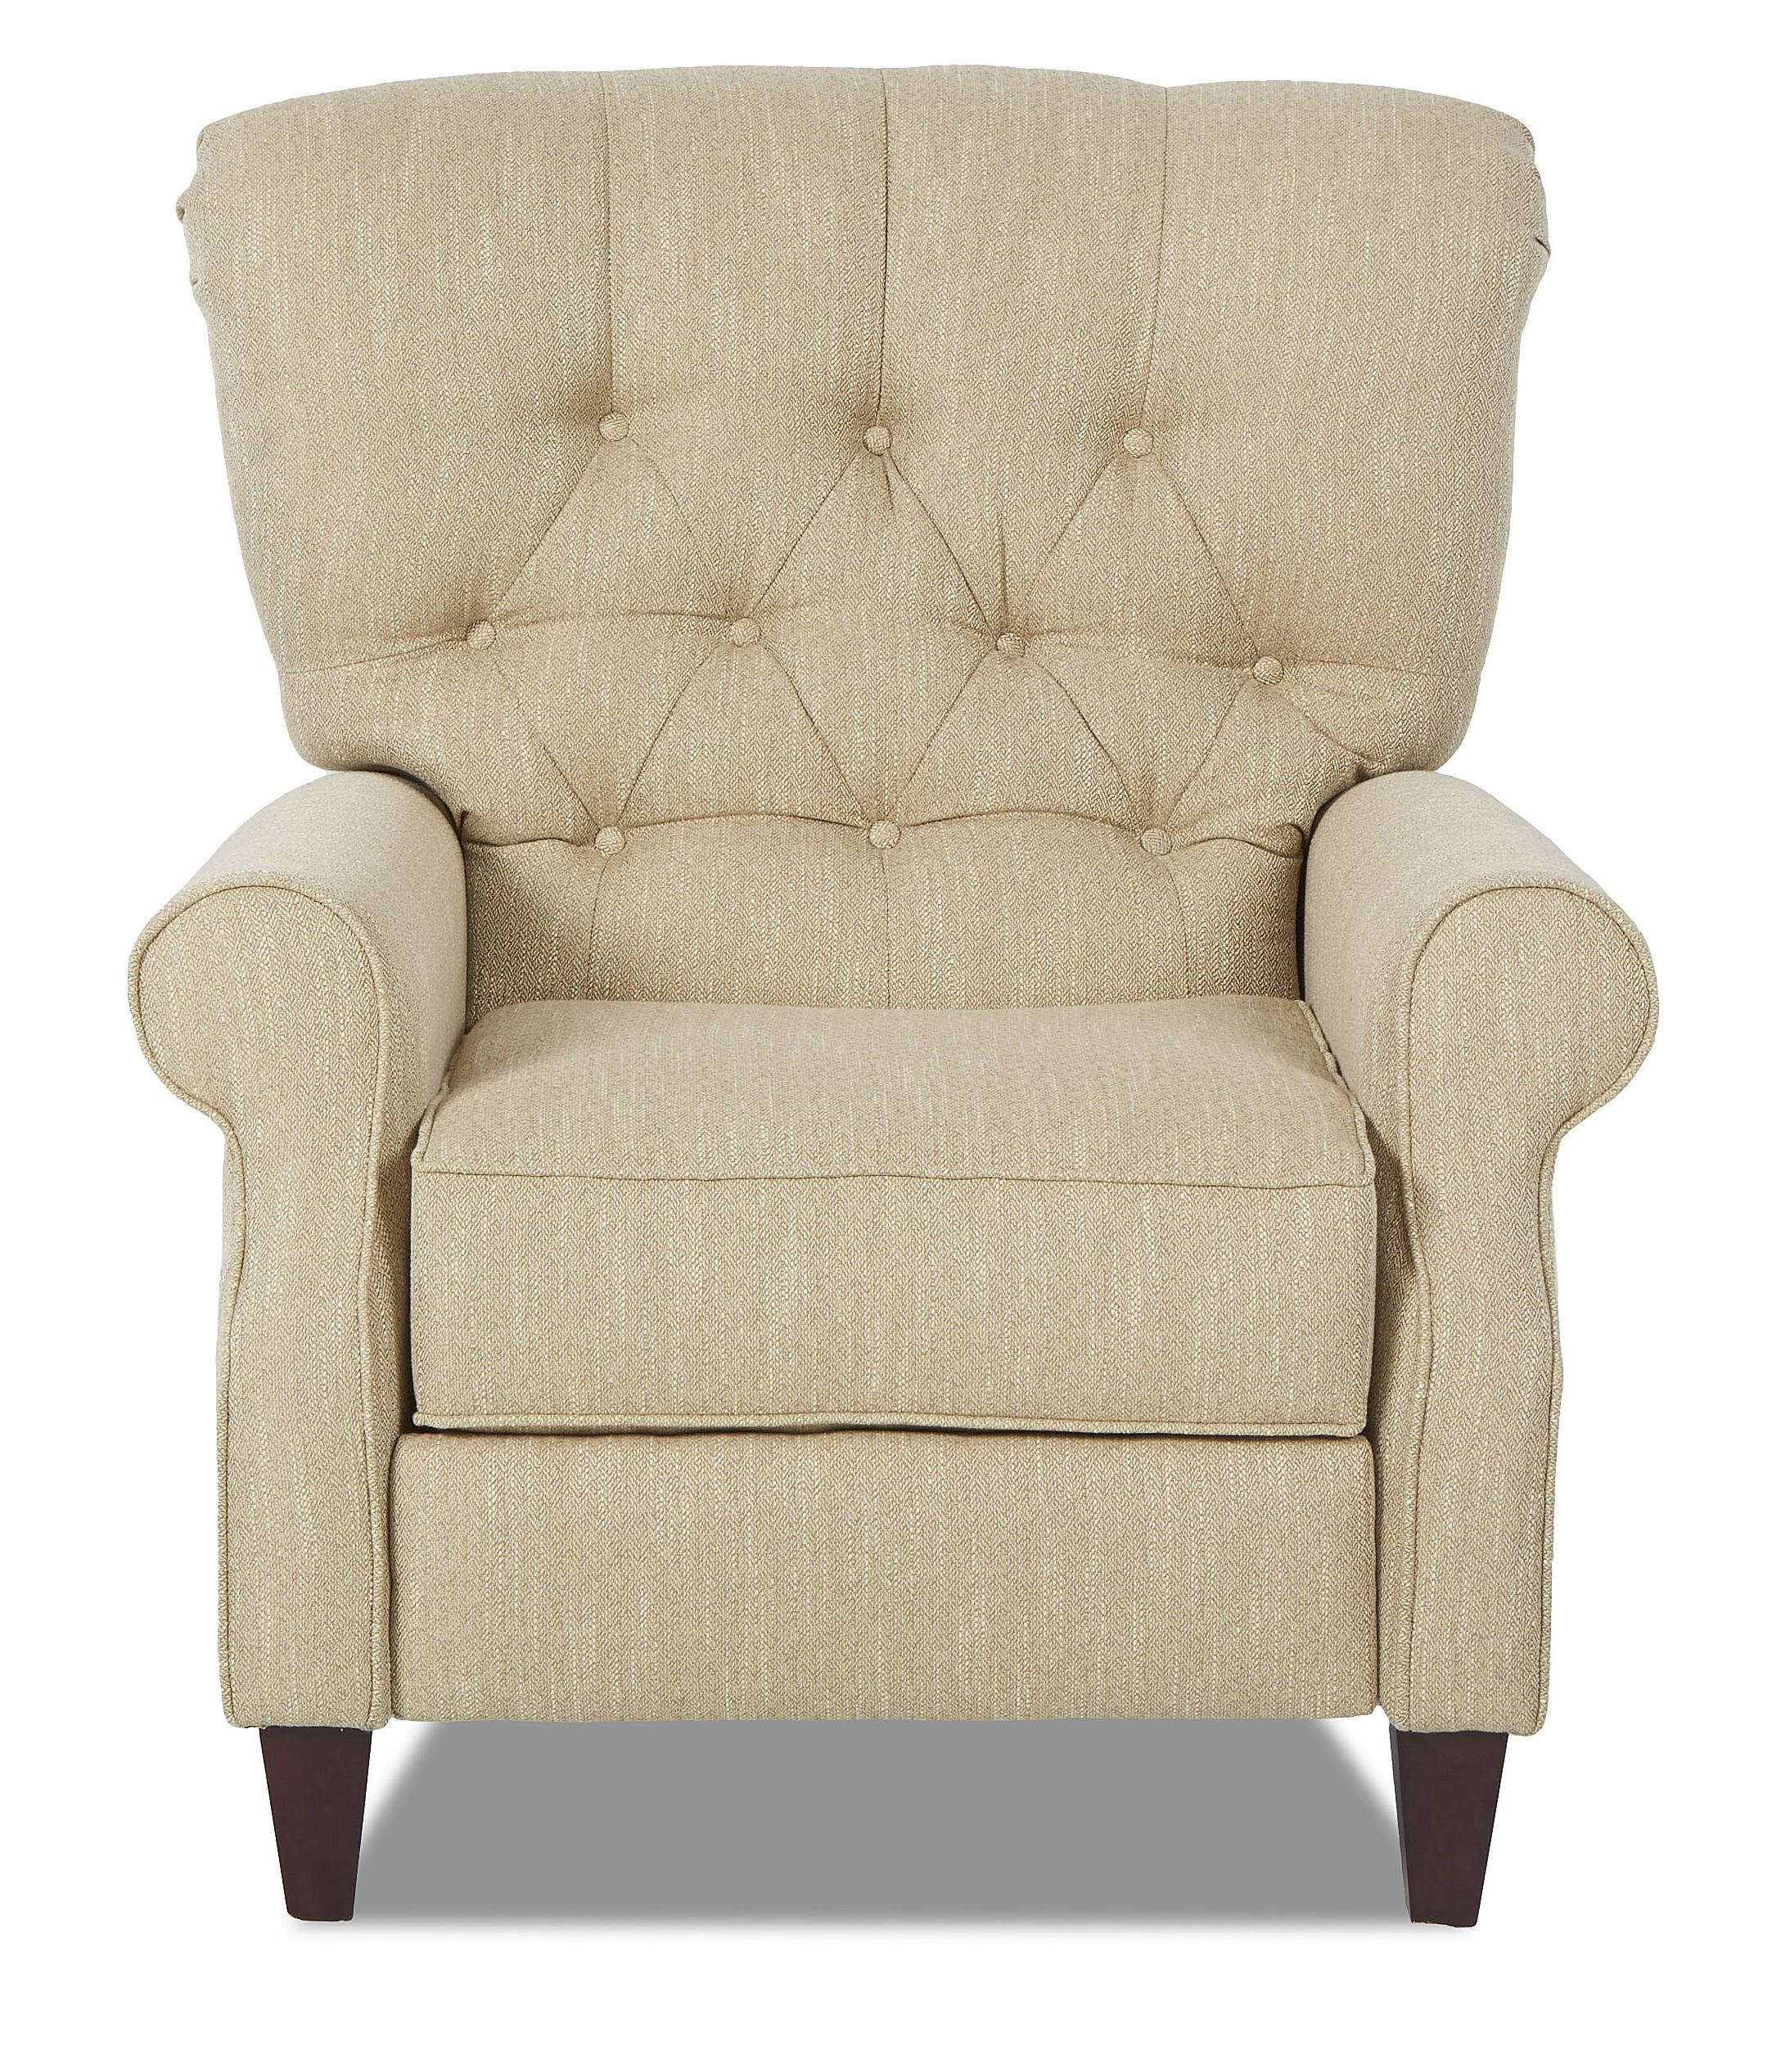 Strand Power High Leg Recliner by Klaussner at Catalog Outlet